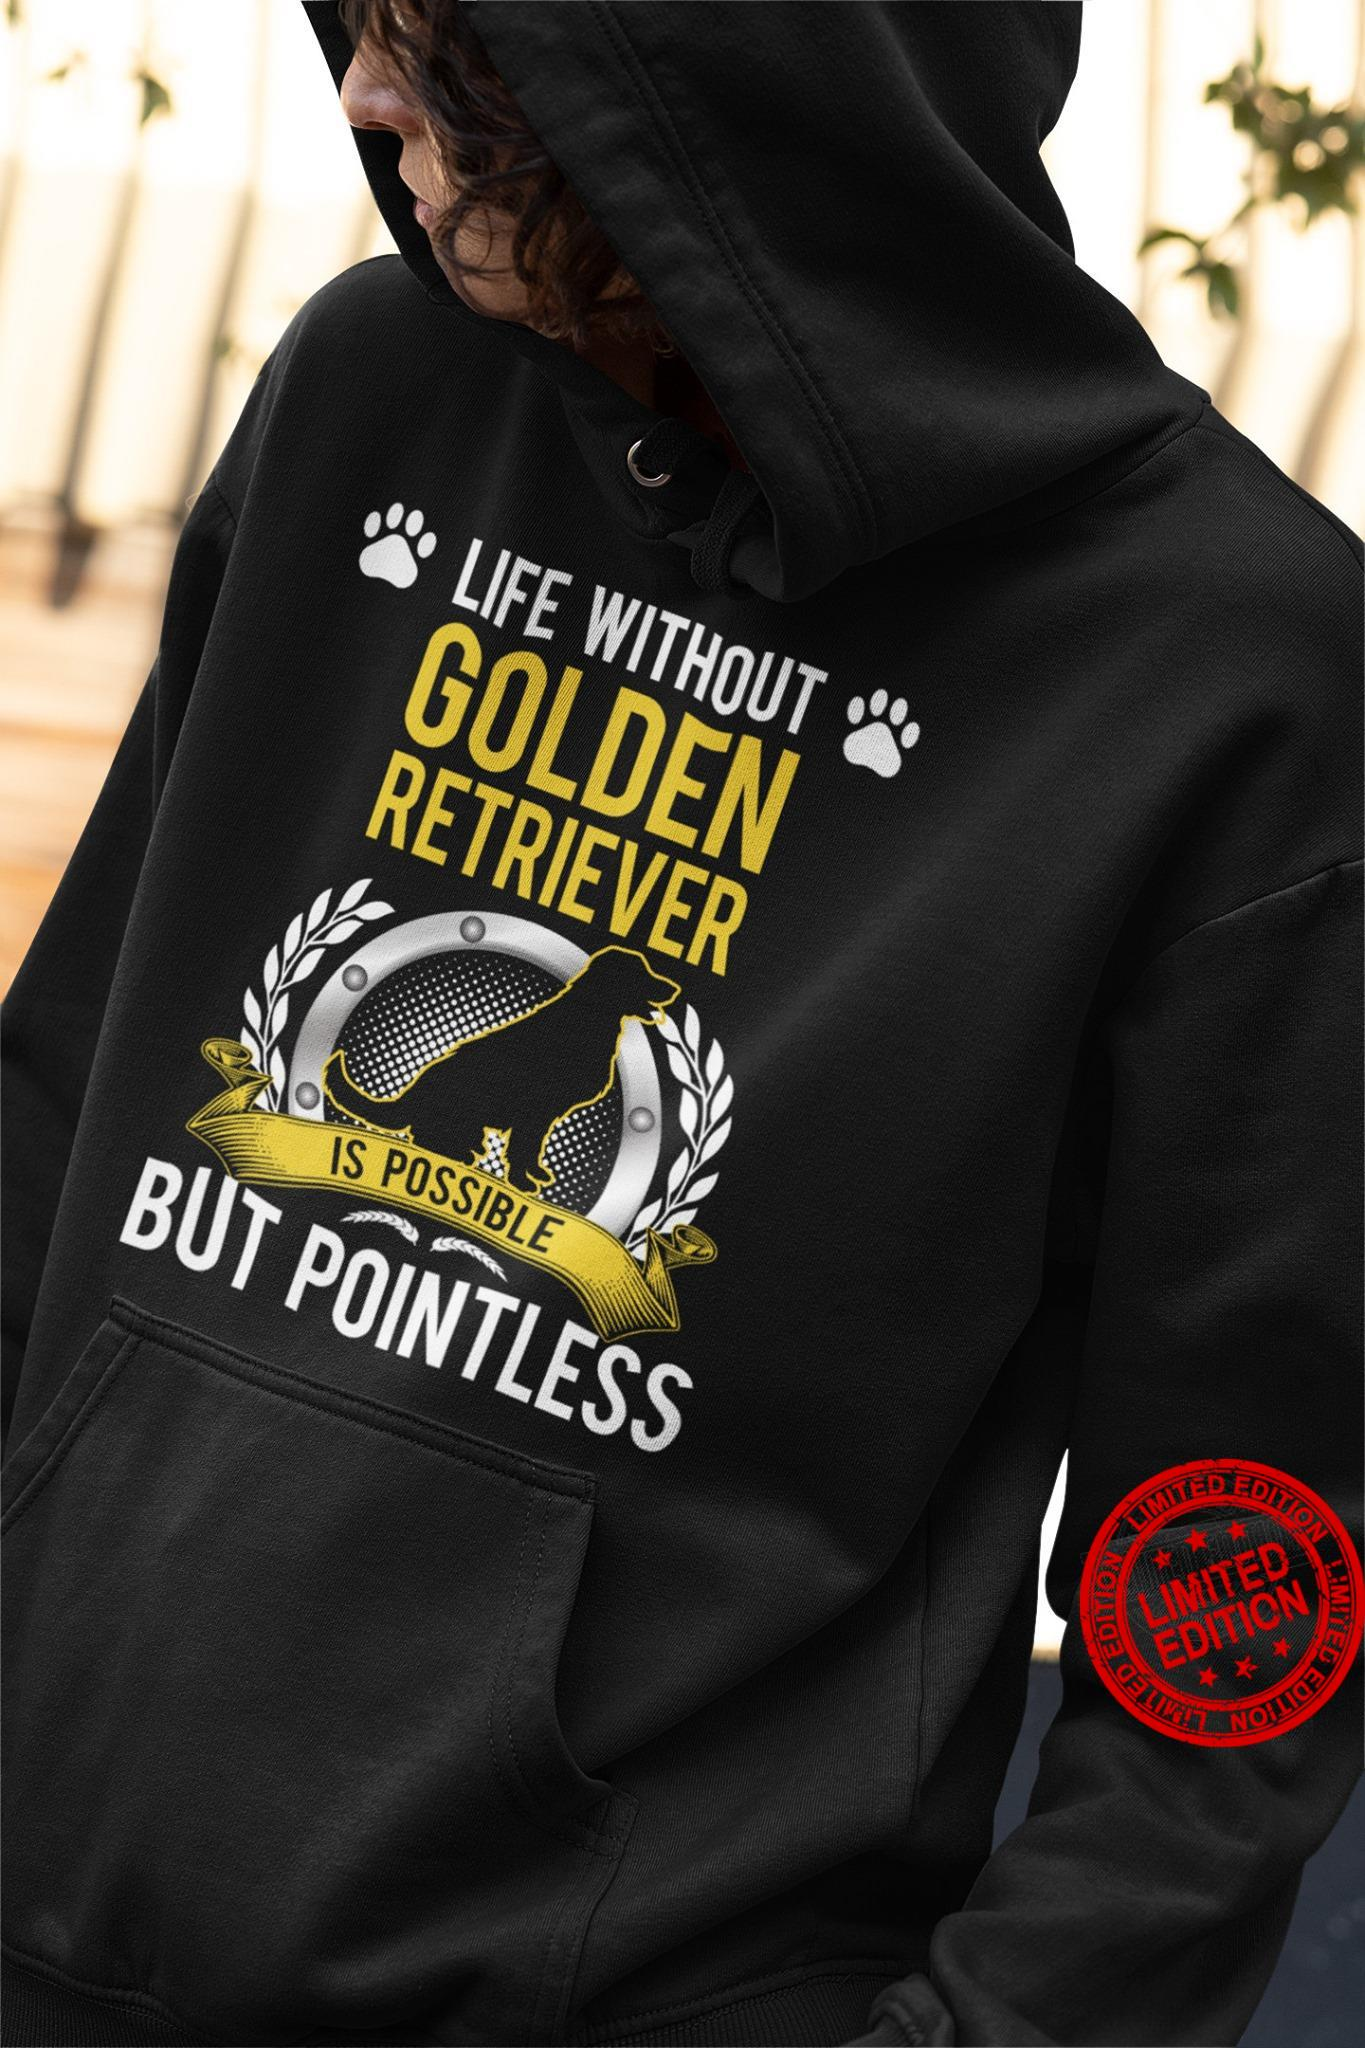 Life Without Golden Retriever Is Possible But Pointless Shirt